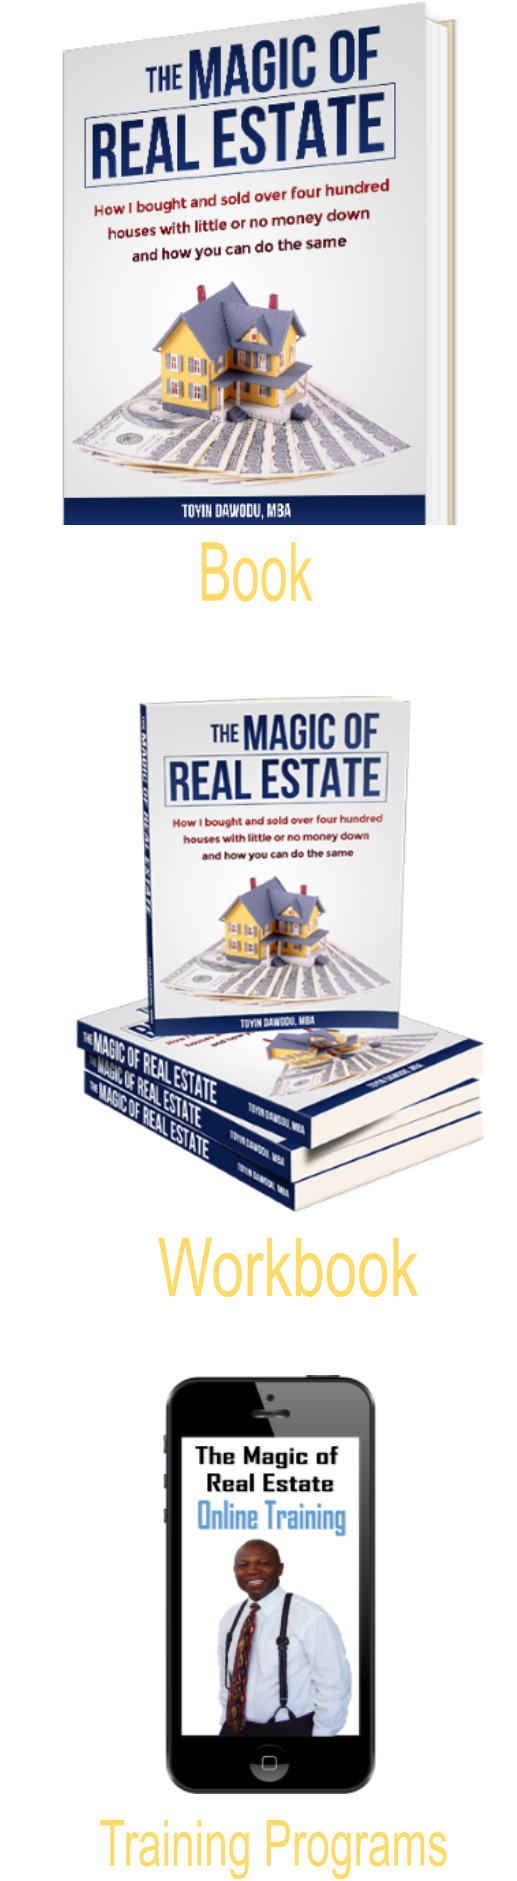 The Magic of Real Estate Training Products by Toyin Dawodu